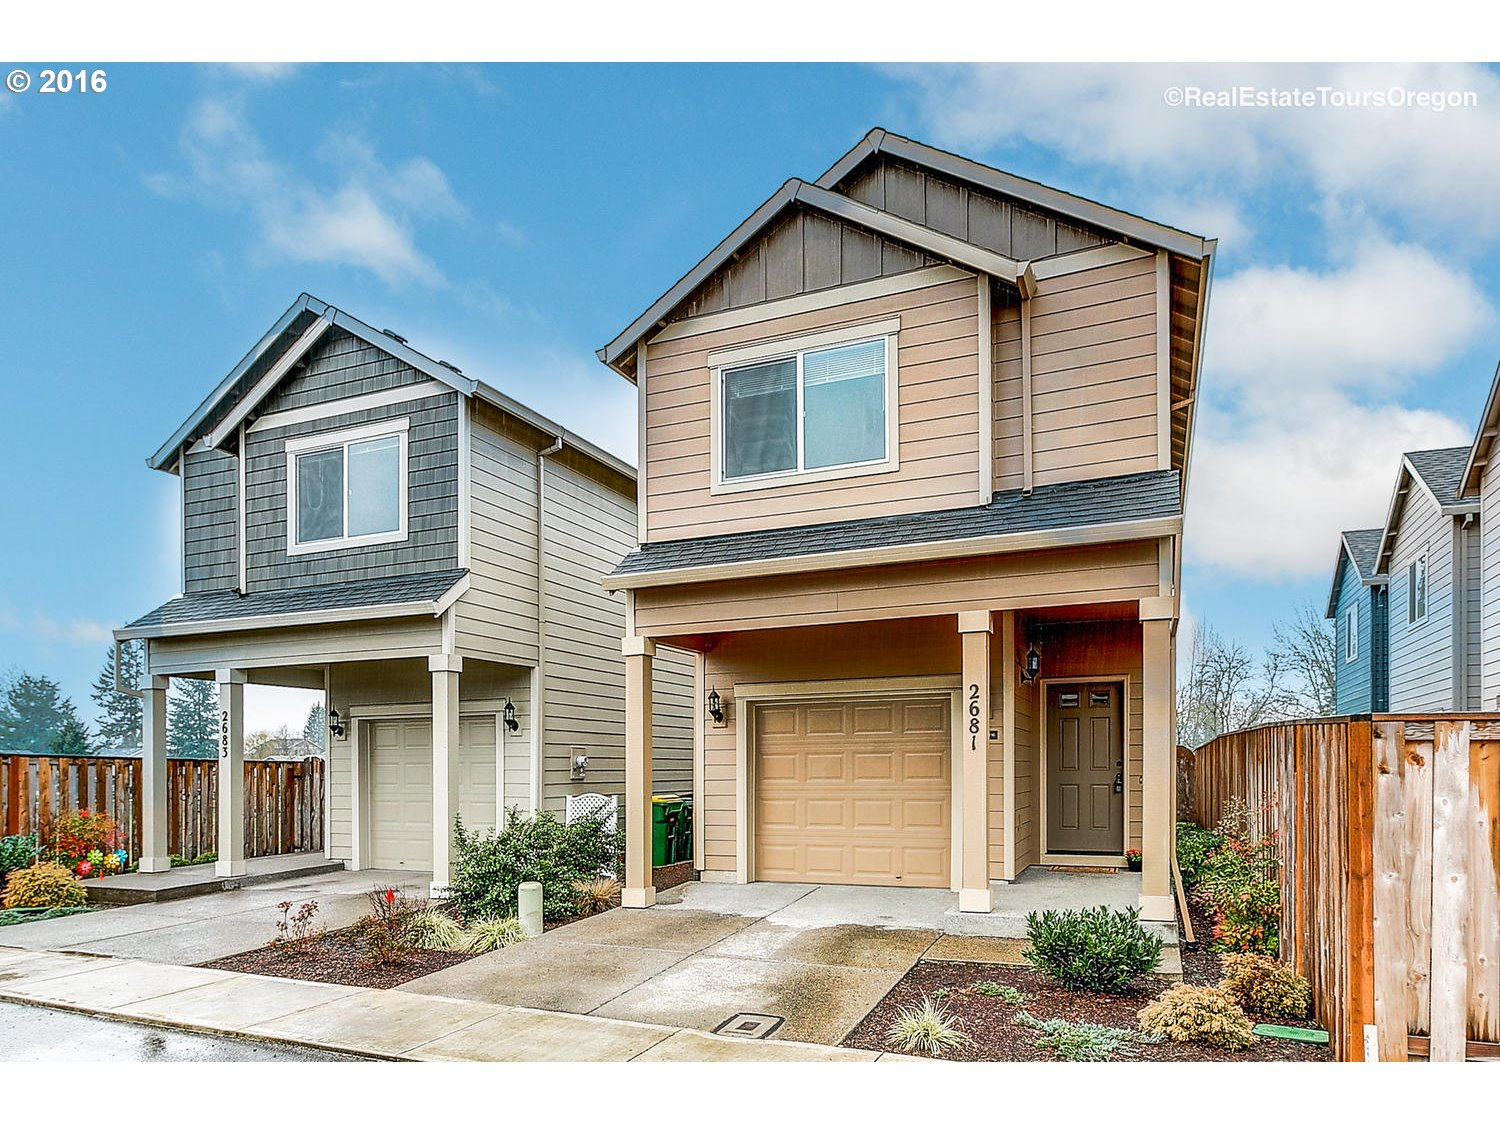 2681 Adeline Ct, Forest Grove, OR